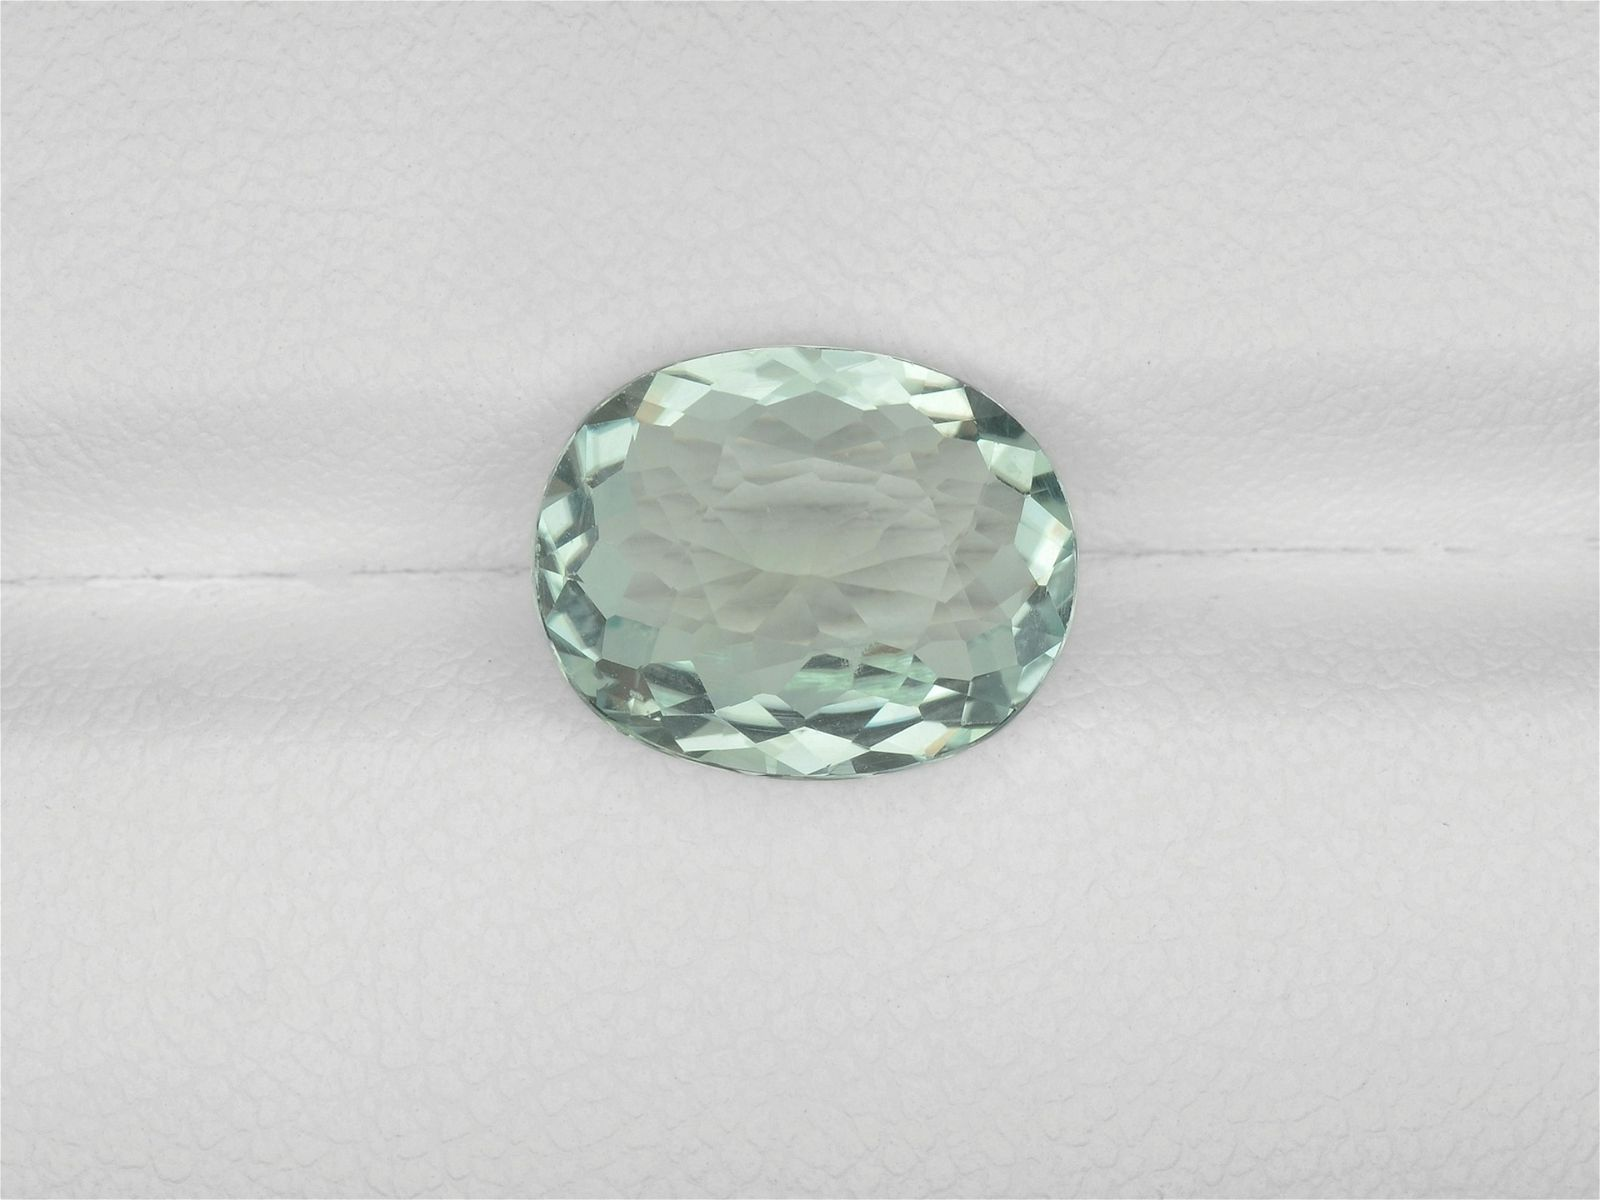 Paraiba Tourmaline, 3.24ct, Mined in Mozambique